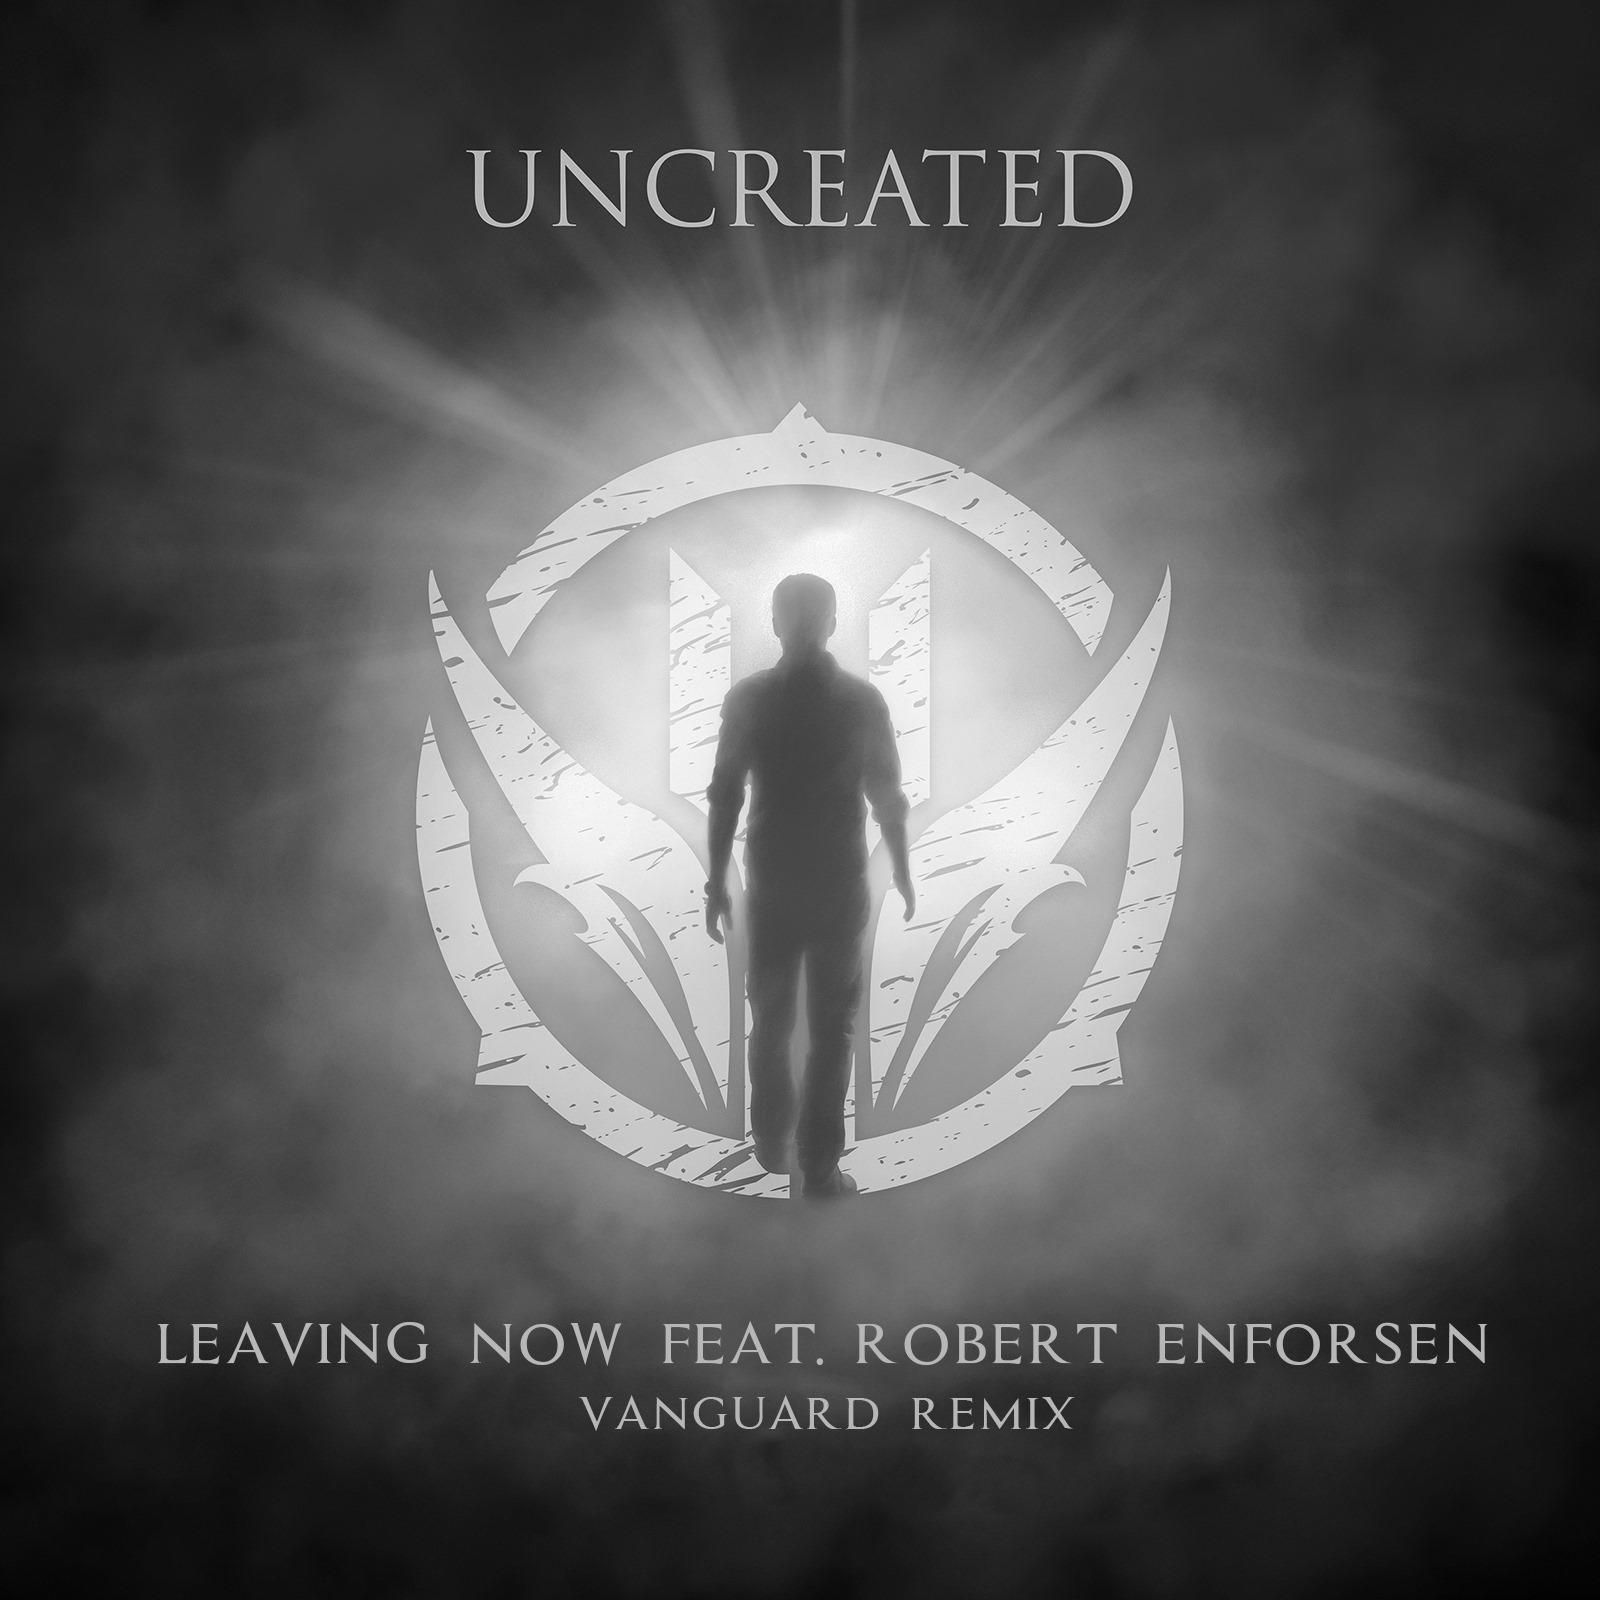 Uncreated Leaving Now Vanguard Remix Free Download